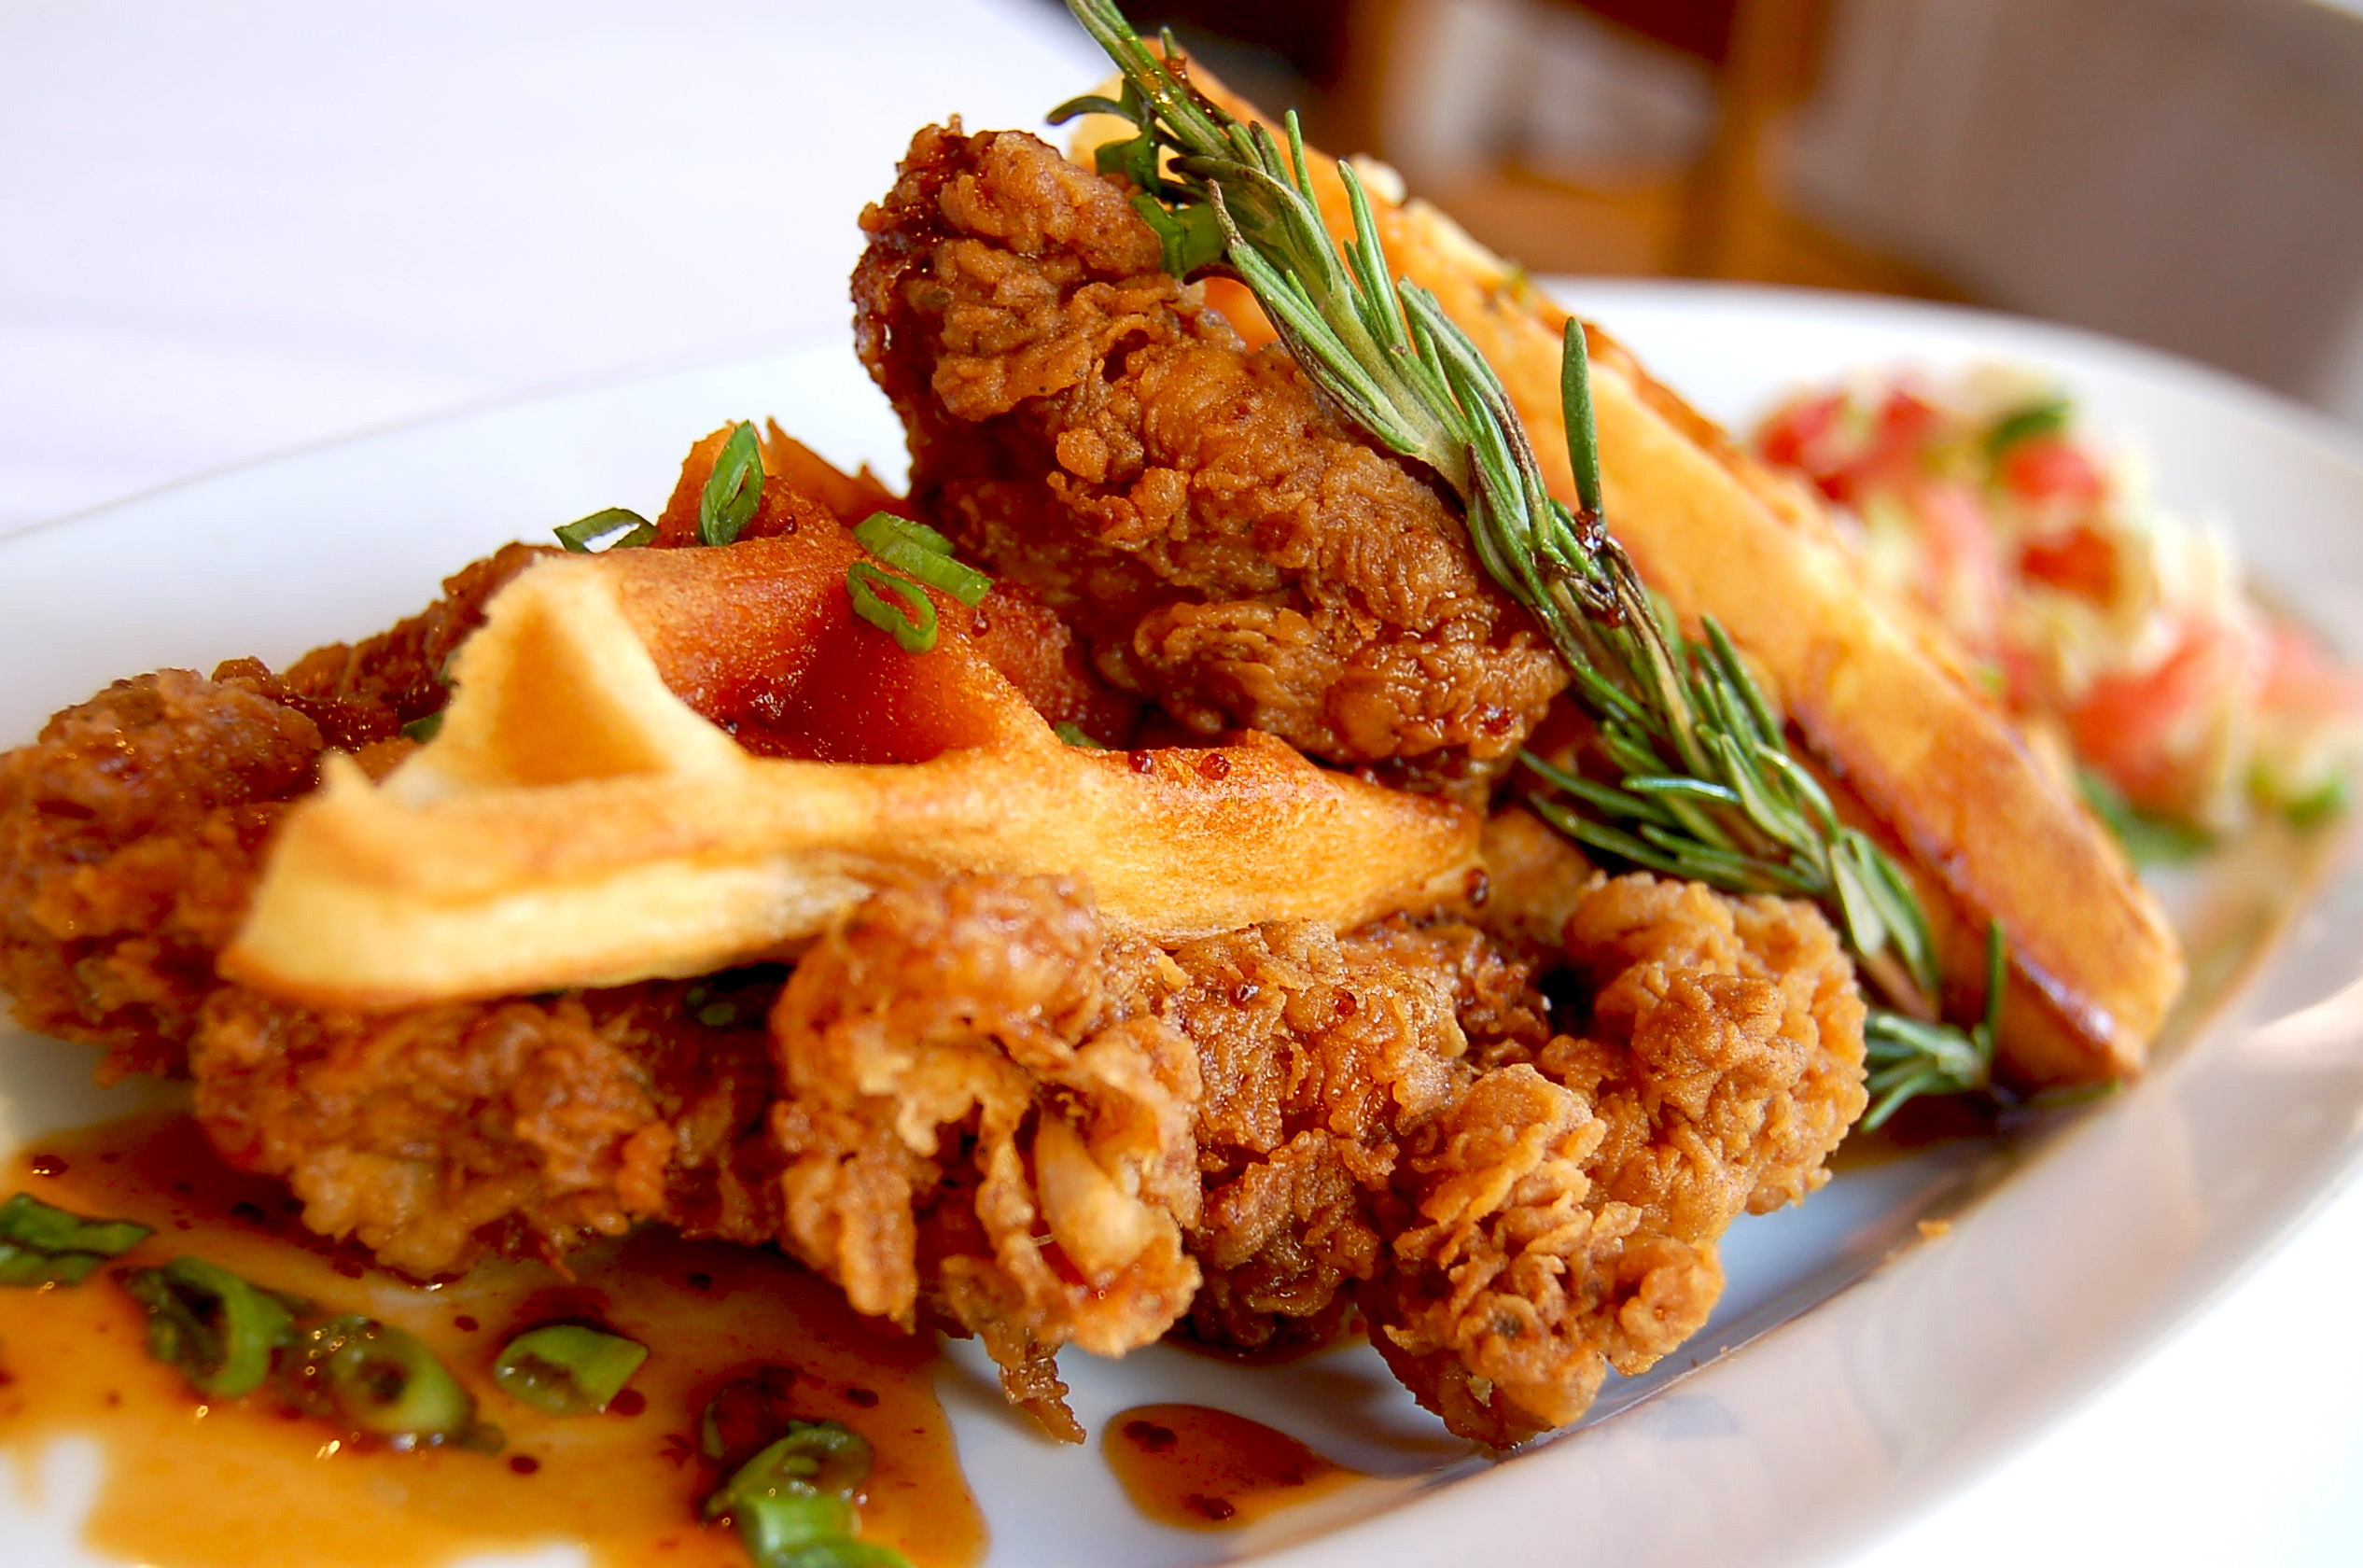 Where to Find Easter Brunch in New Orleans